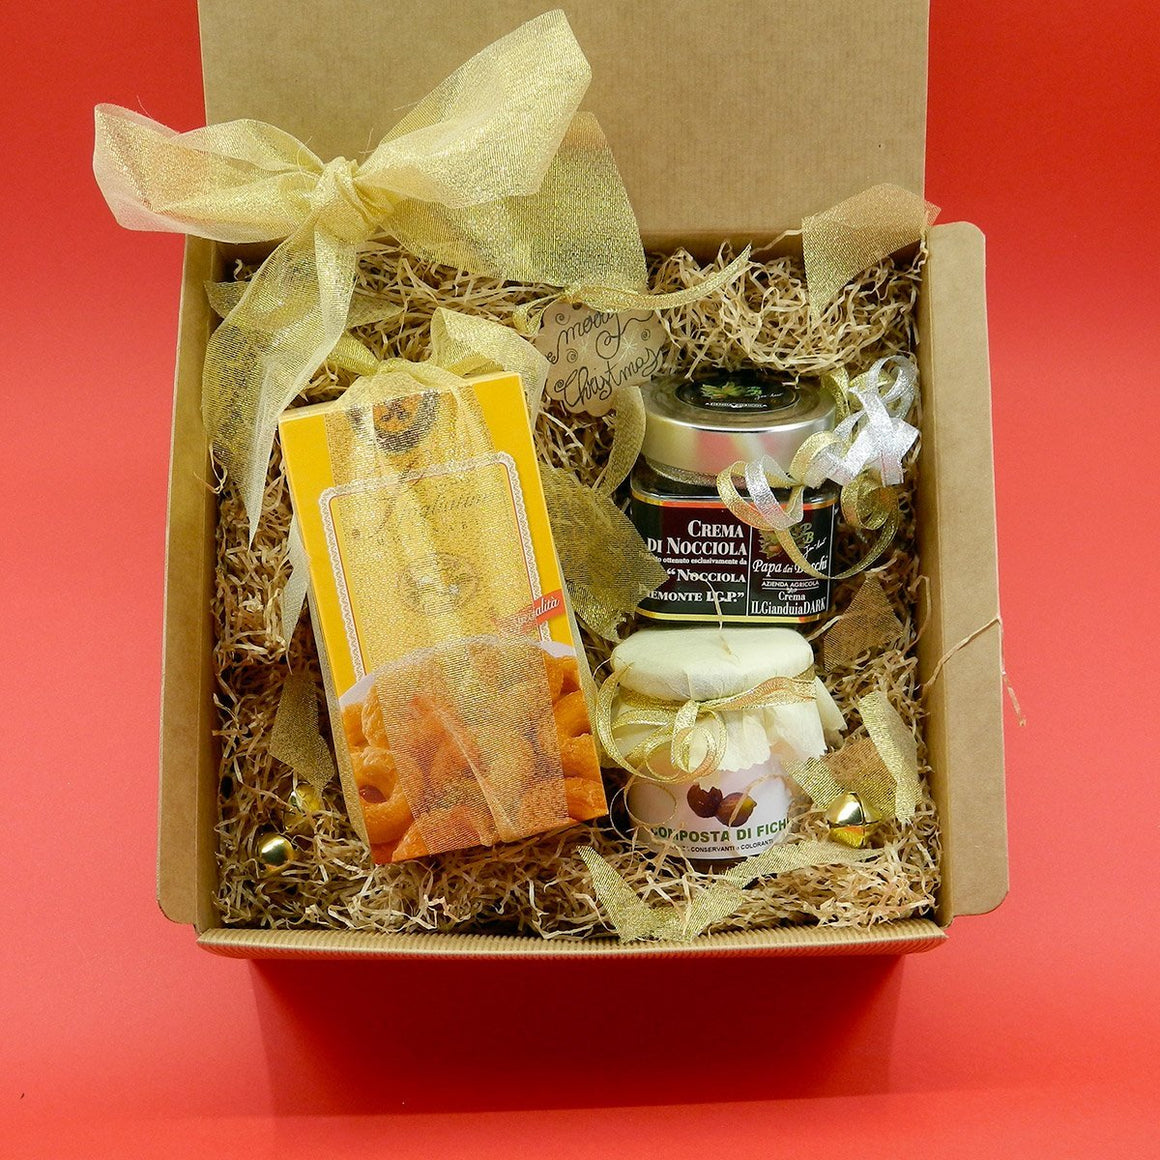 [GIFT] Sweet moments, Sfogliatine, Fig Compote and Hazelnut Cream - PepeGusto